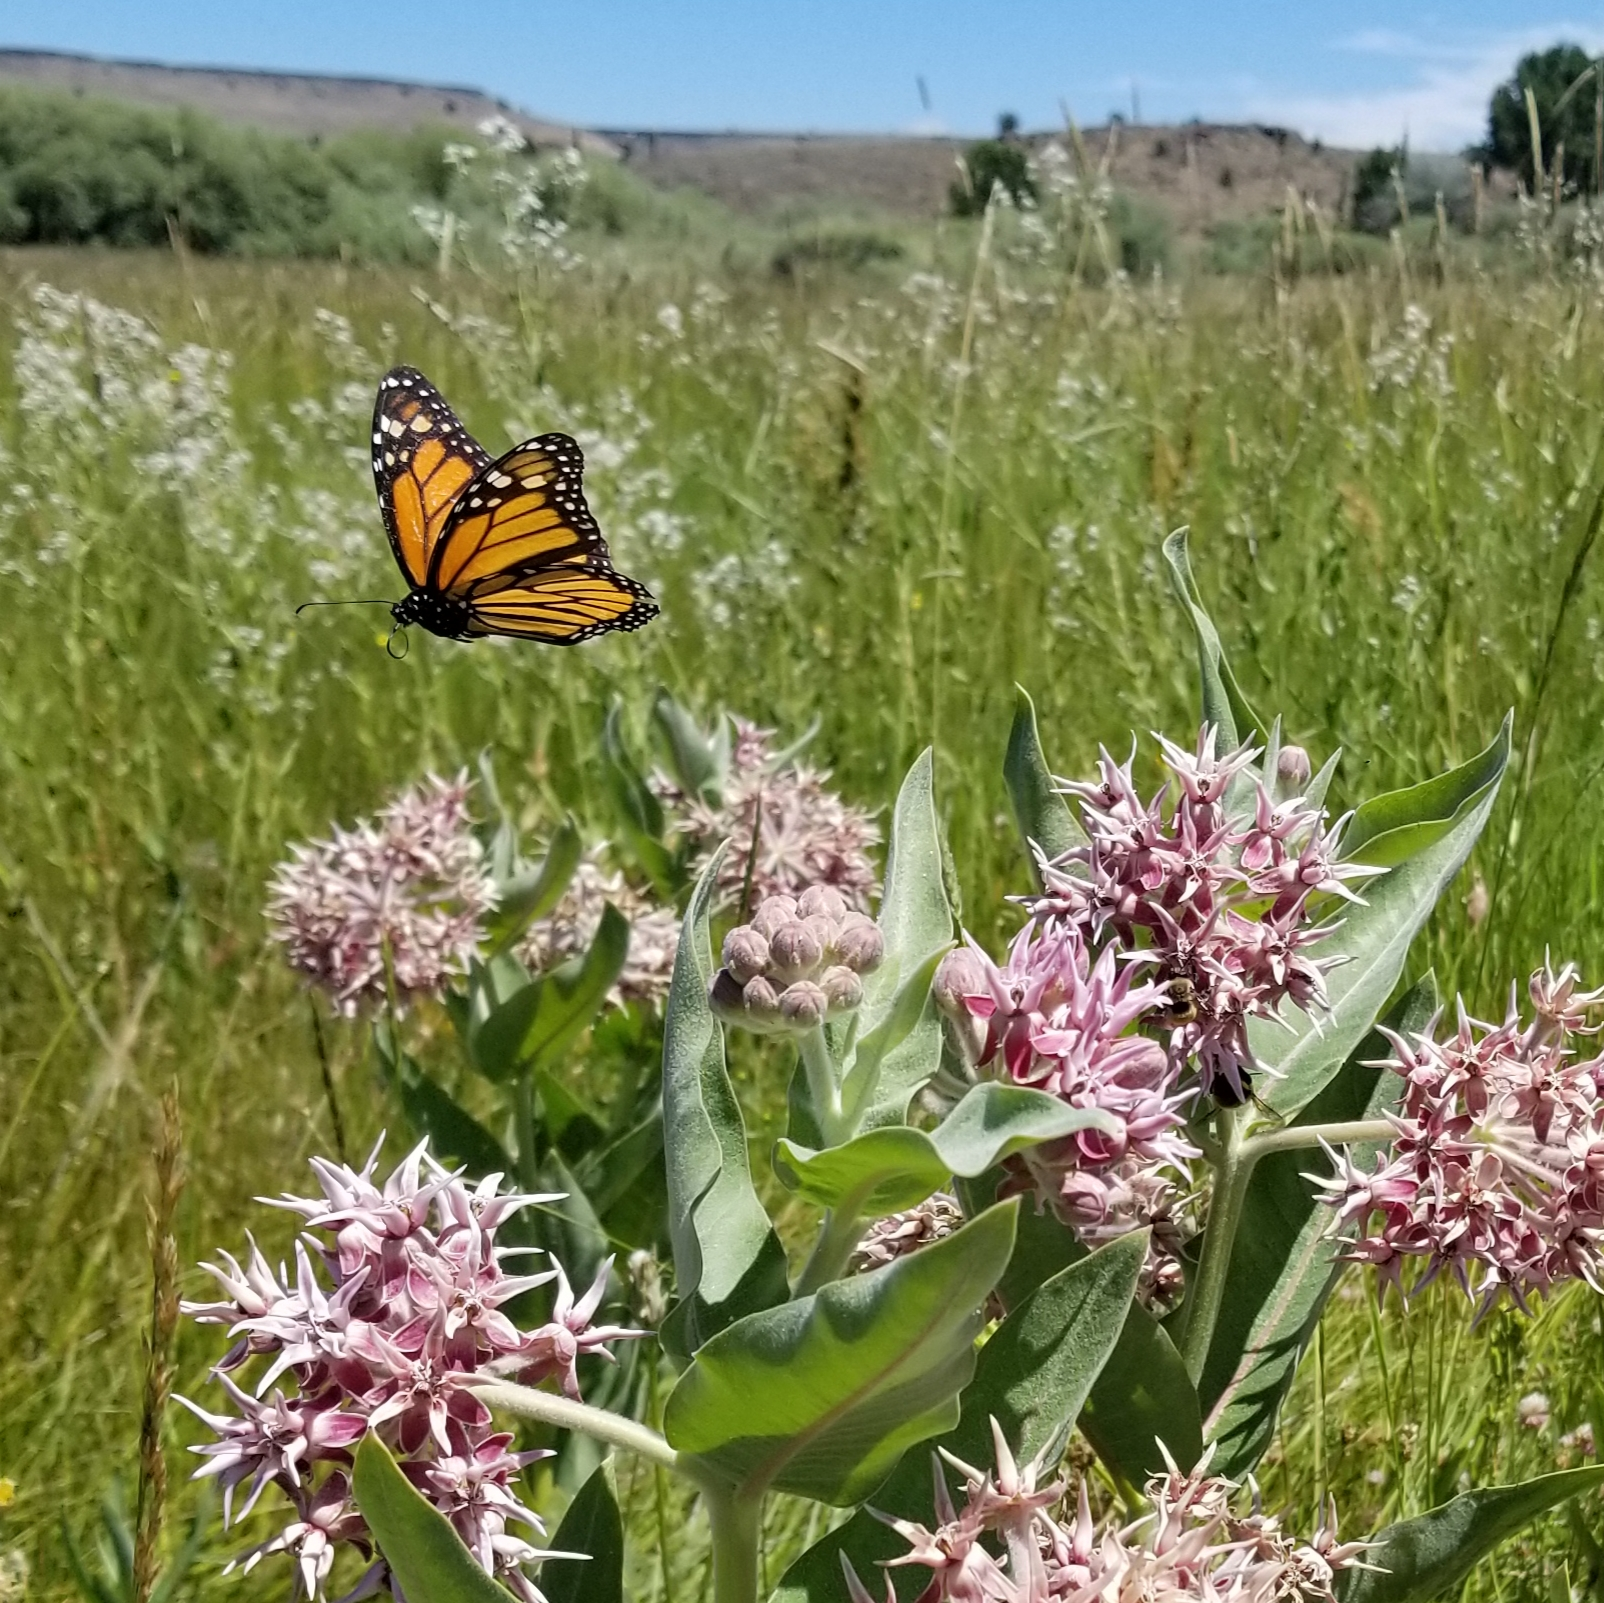 A bright orange monarch flutters over pink milkweed blossoms on a sunny day, in a landscape filled with green grass.